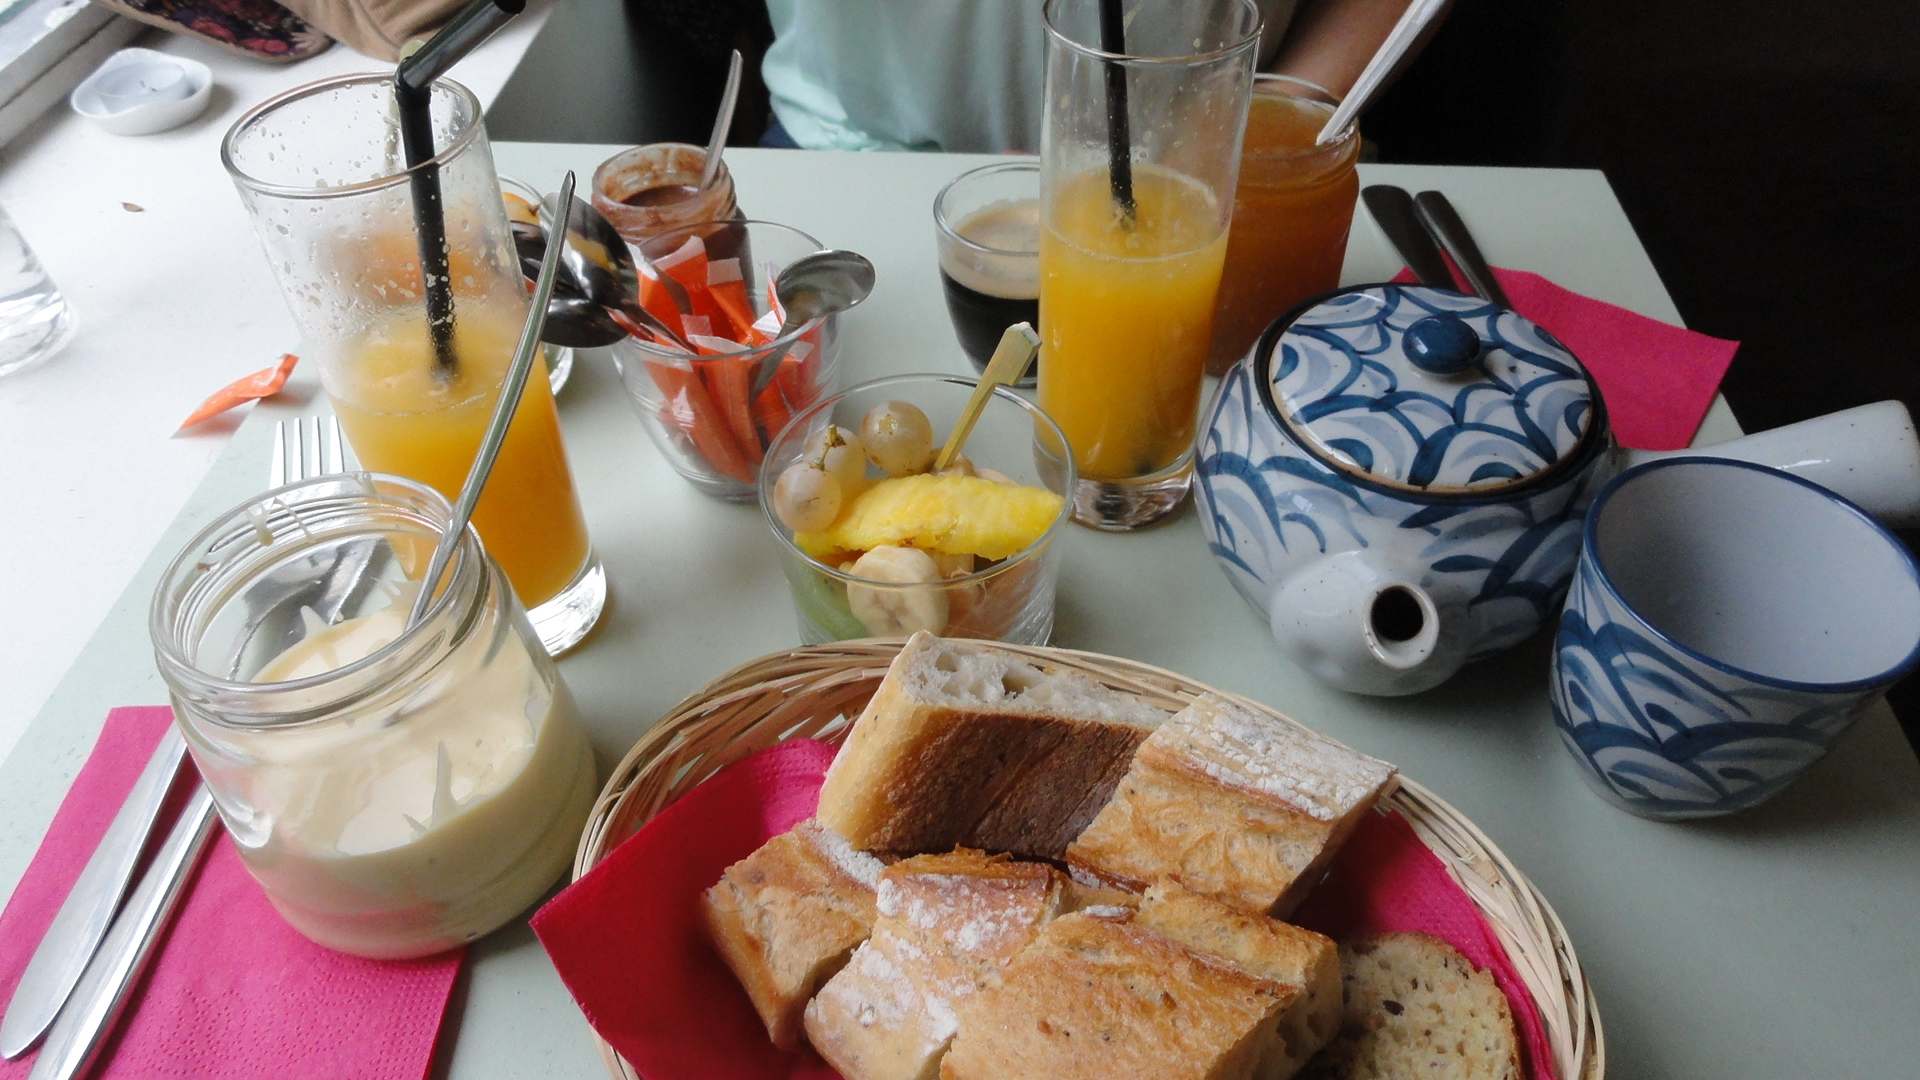 Le Lapin Blanc - Table du Brunch complet